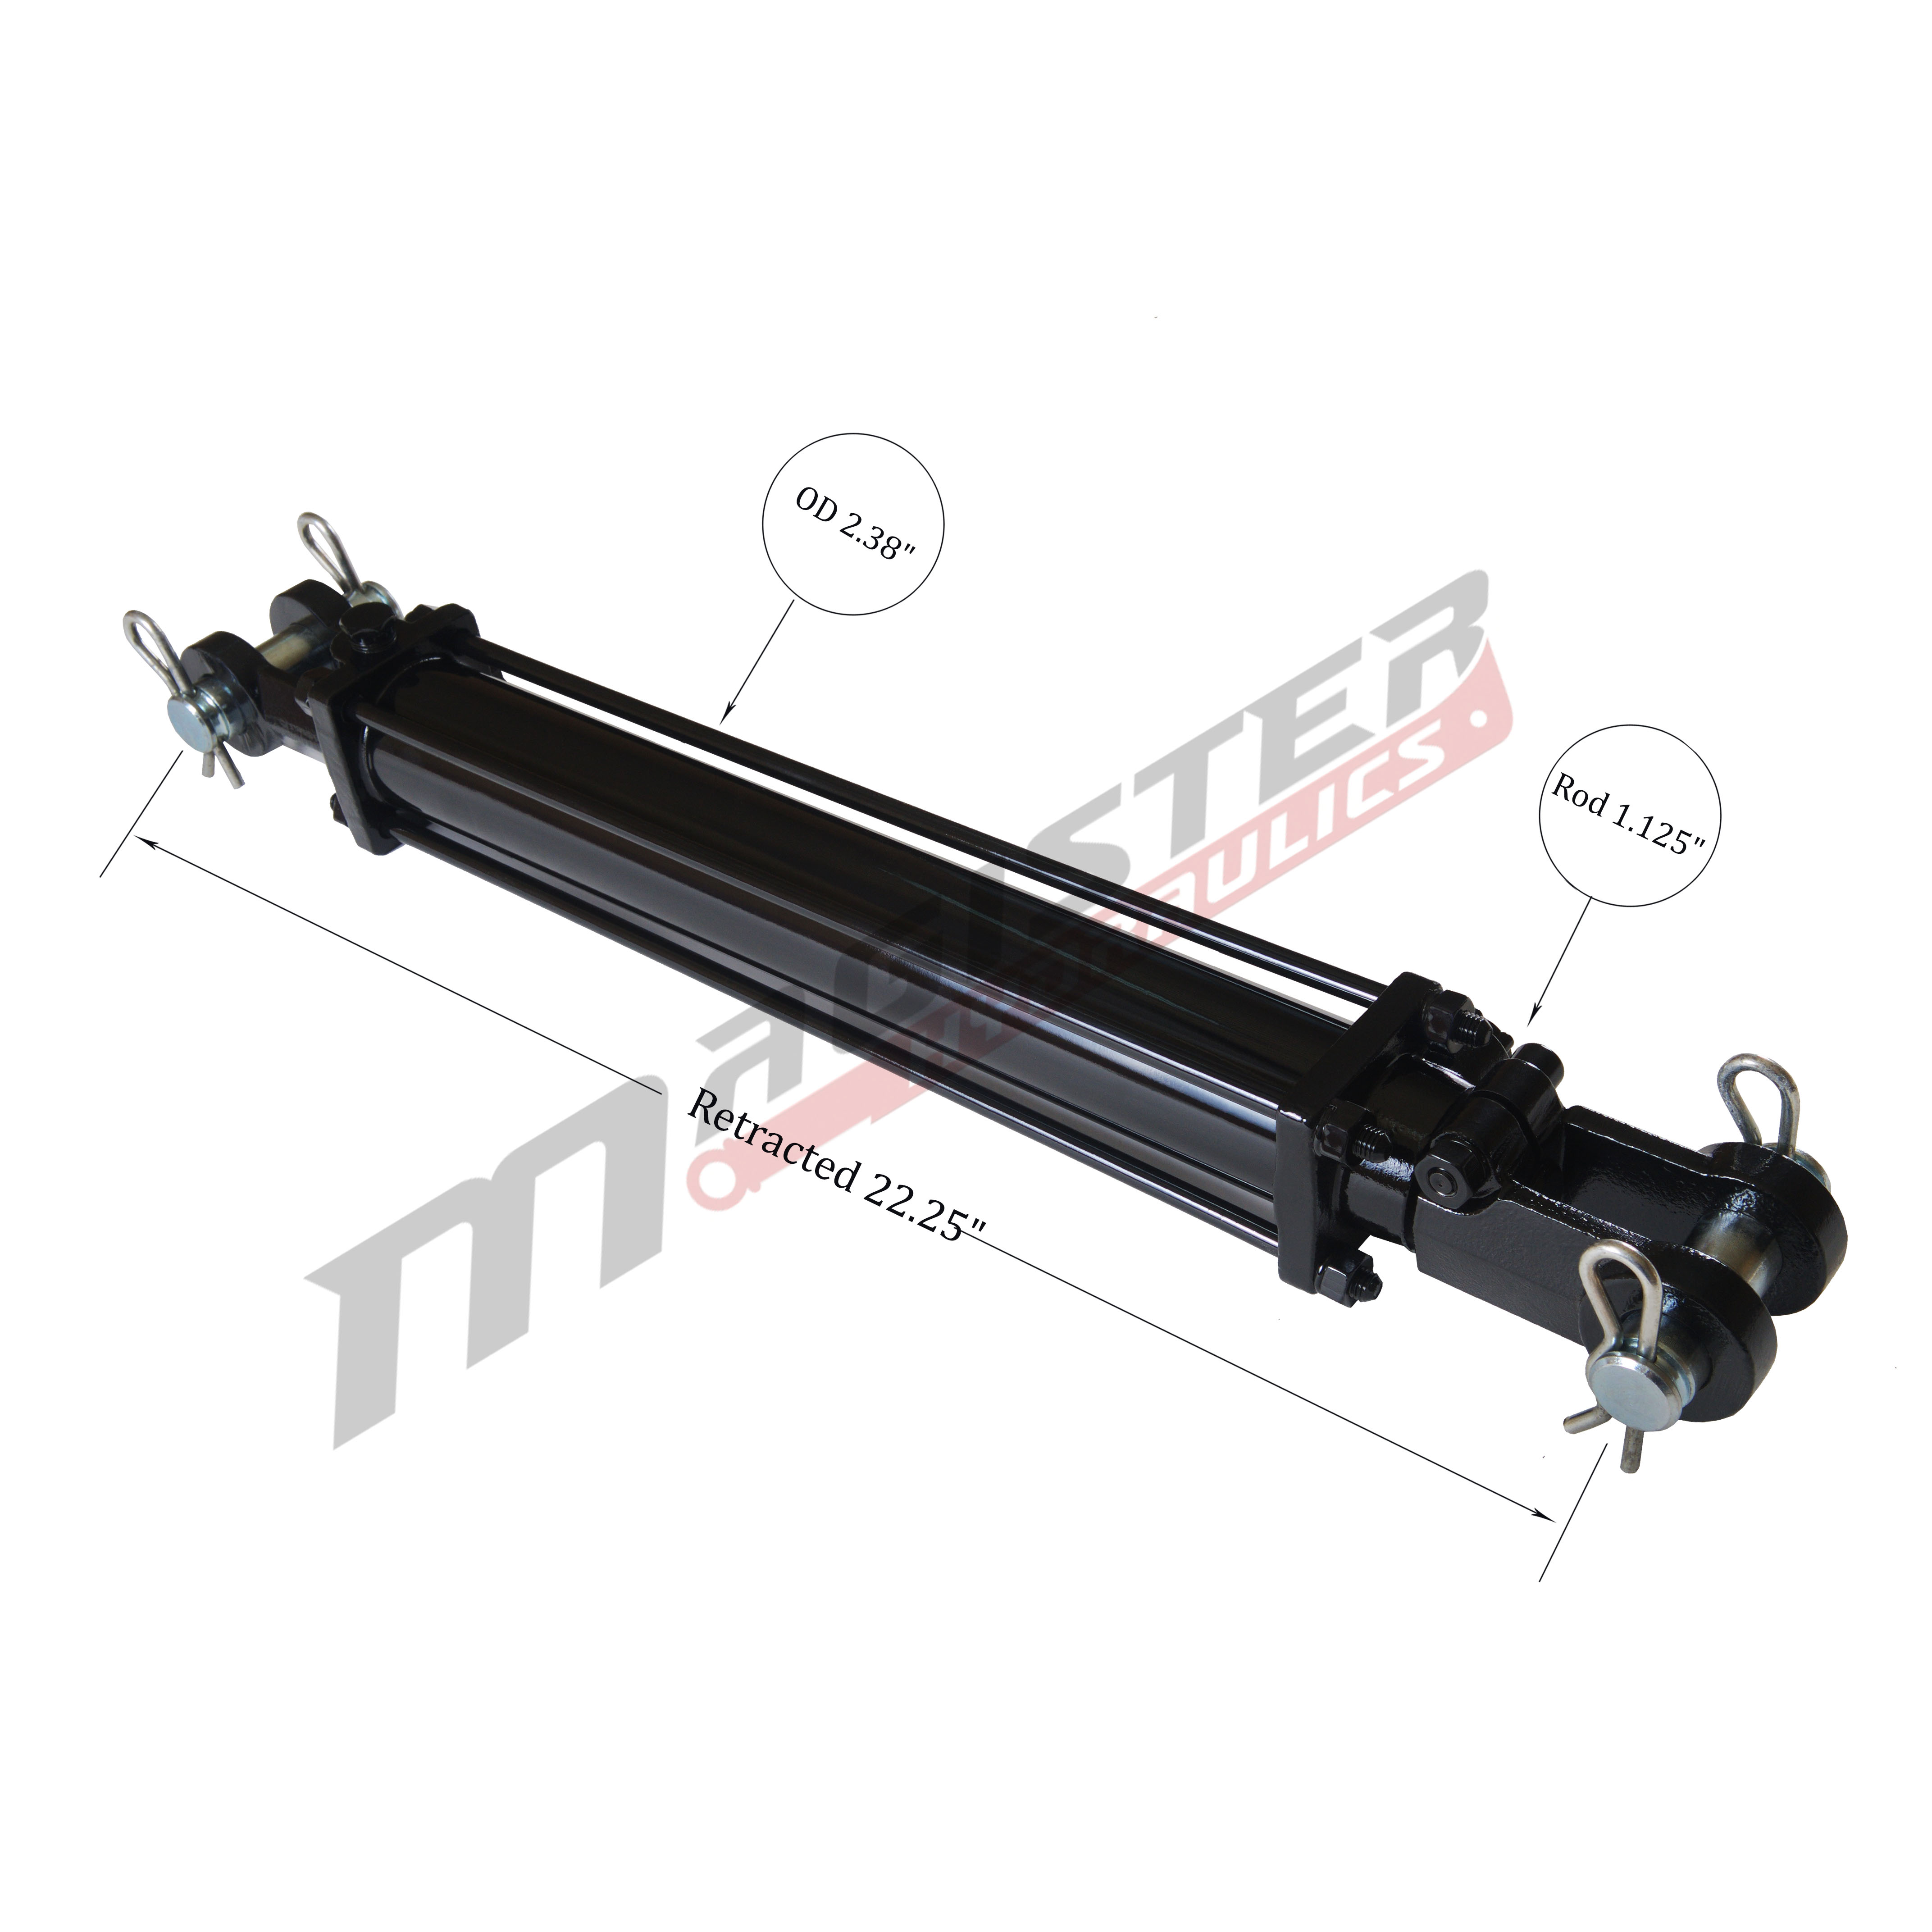 2 bore x 12 stroke hydraulic cylinder, tie rod double acting cylinder | Magister Hydraulics